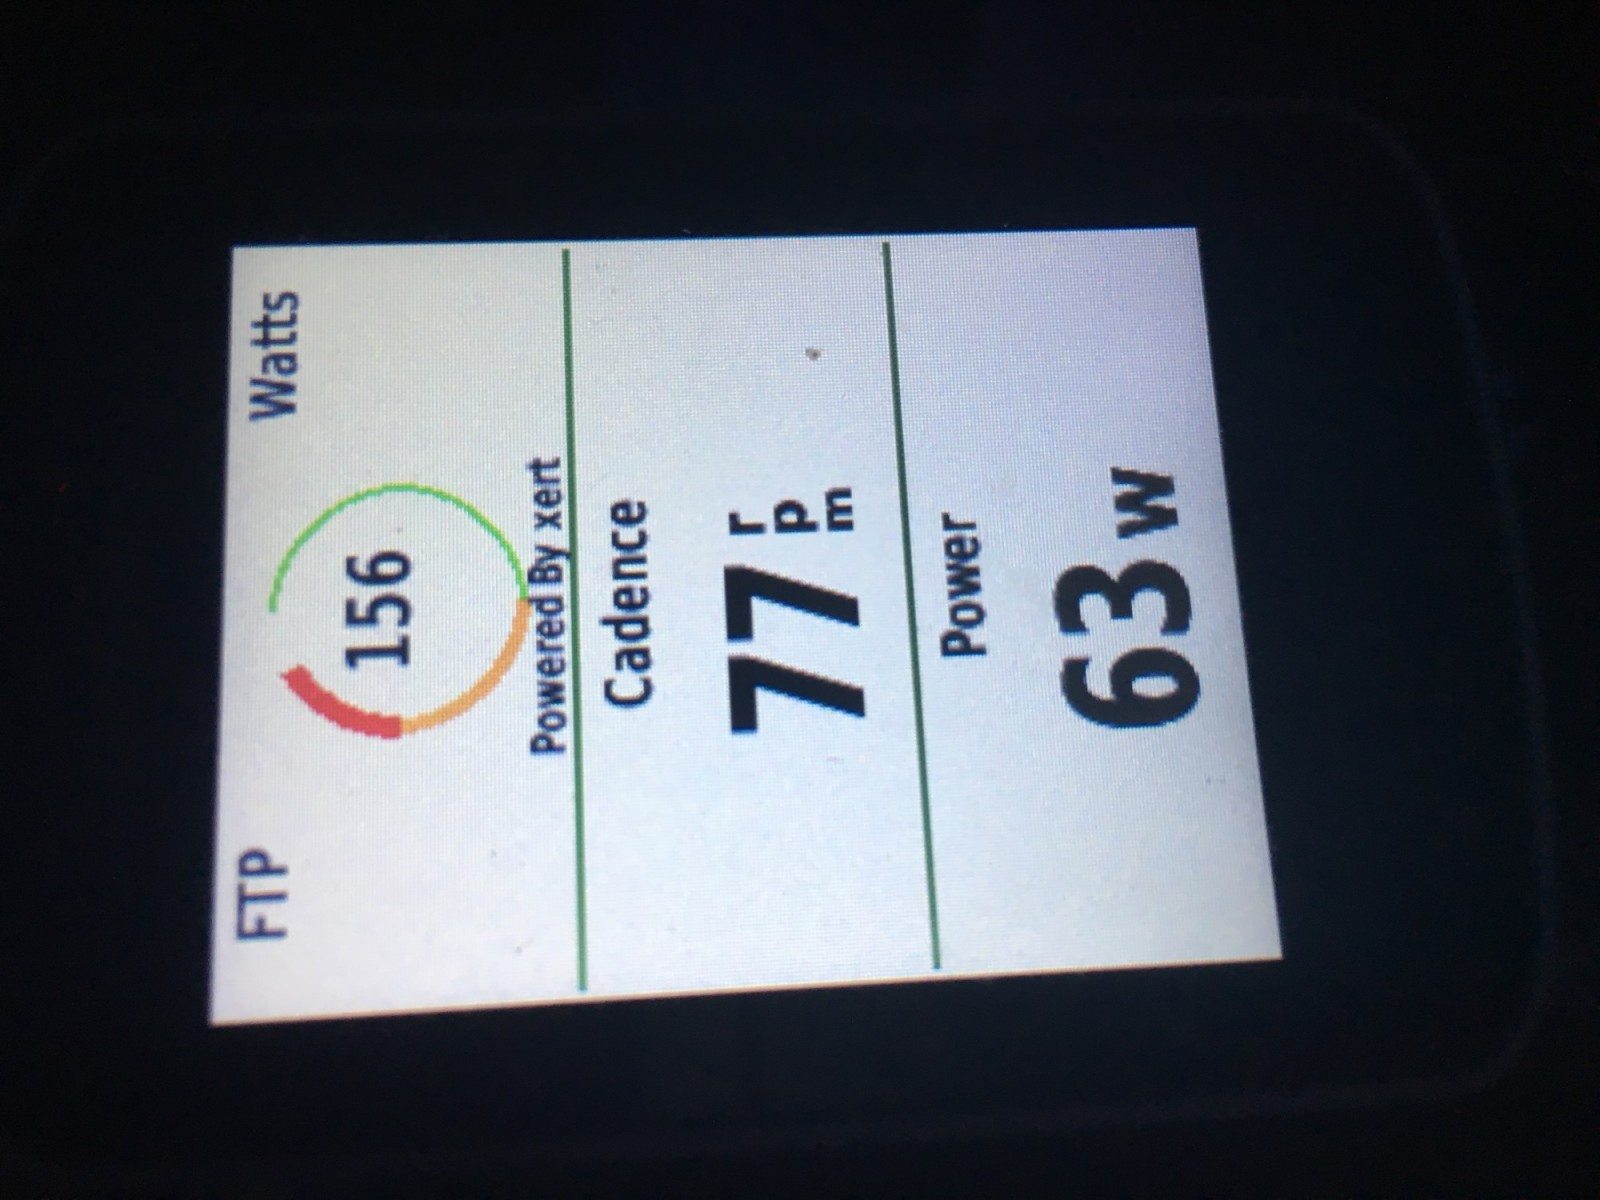 Xert rolls out free real-time FTP app on Garmin devices | DC